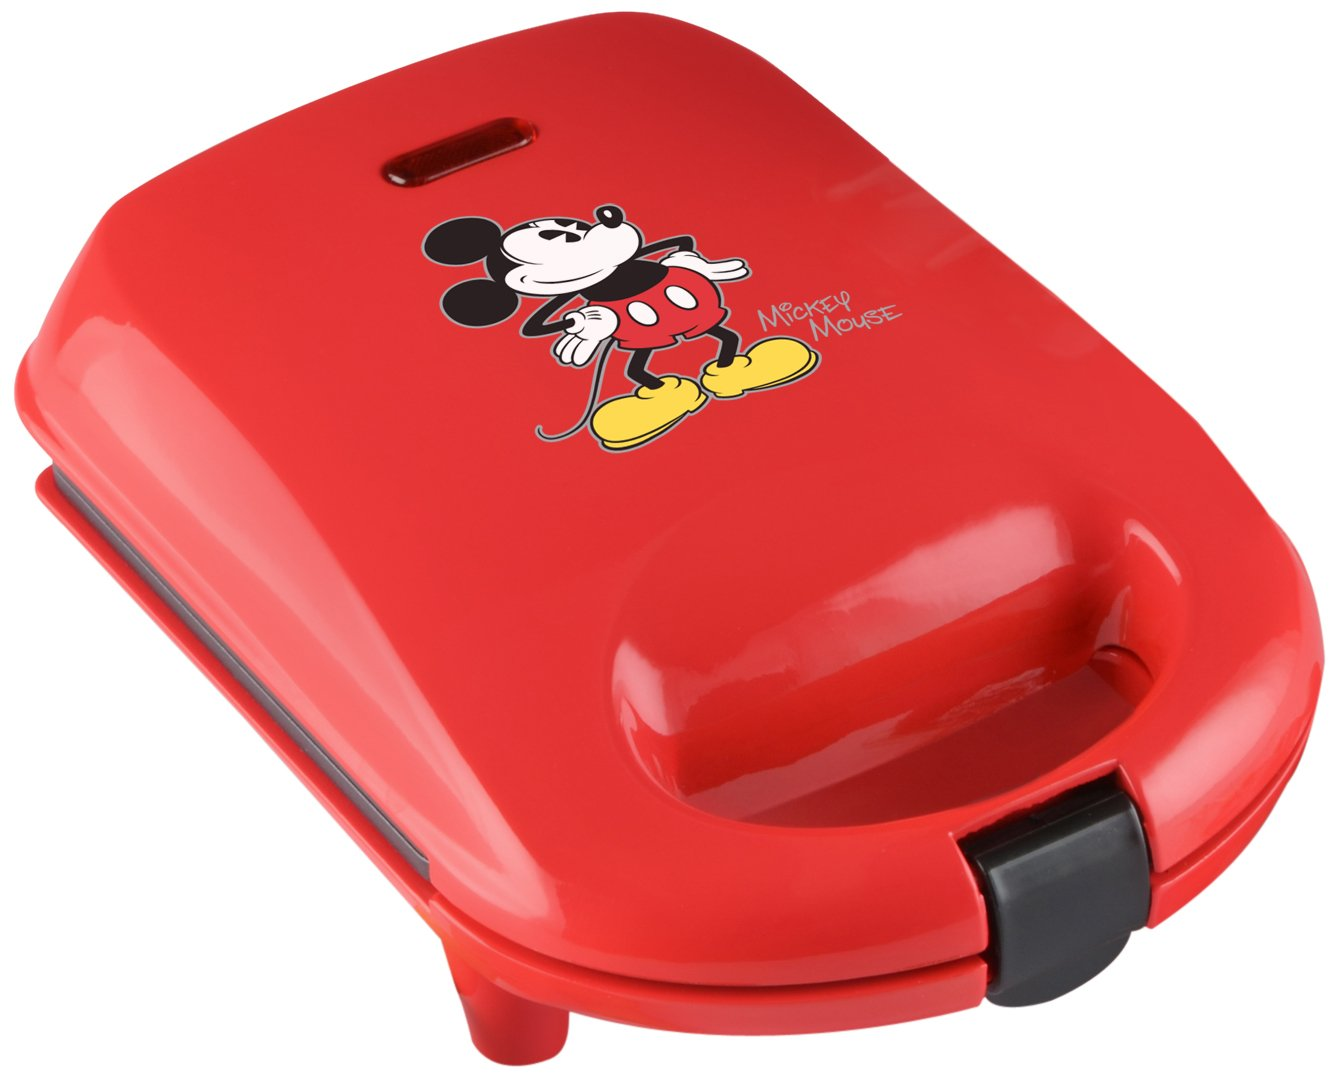 Disney DCM-8 Cake Pop Maker One Size Red